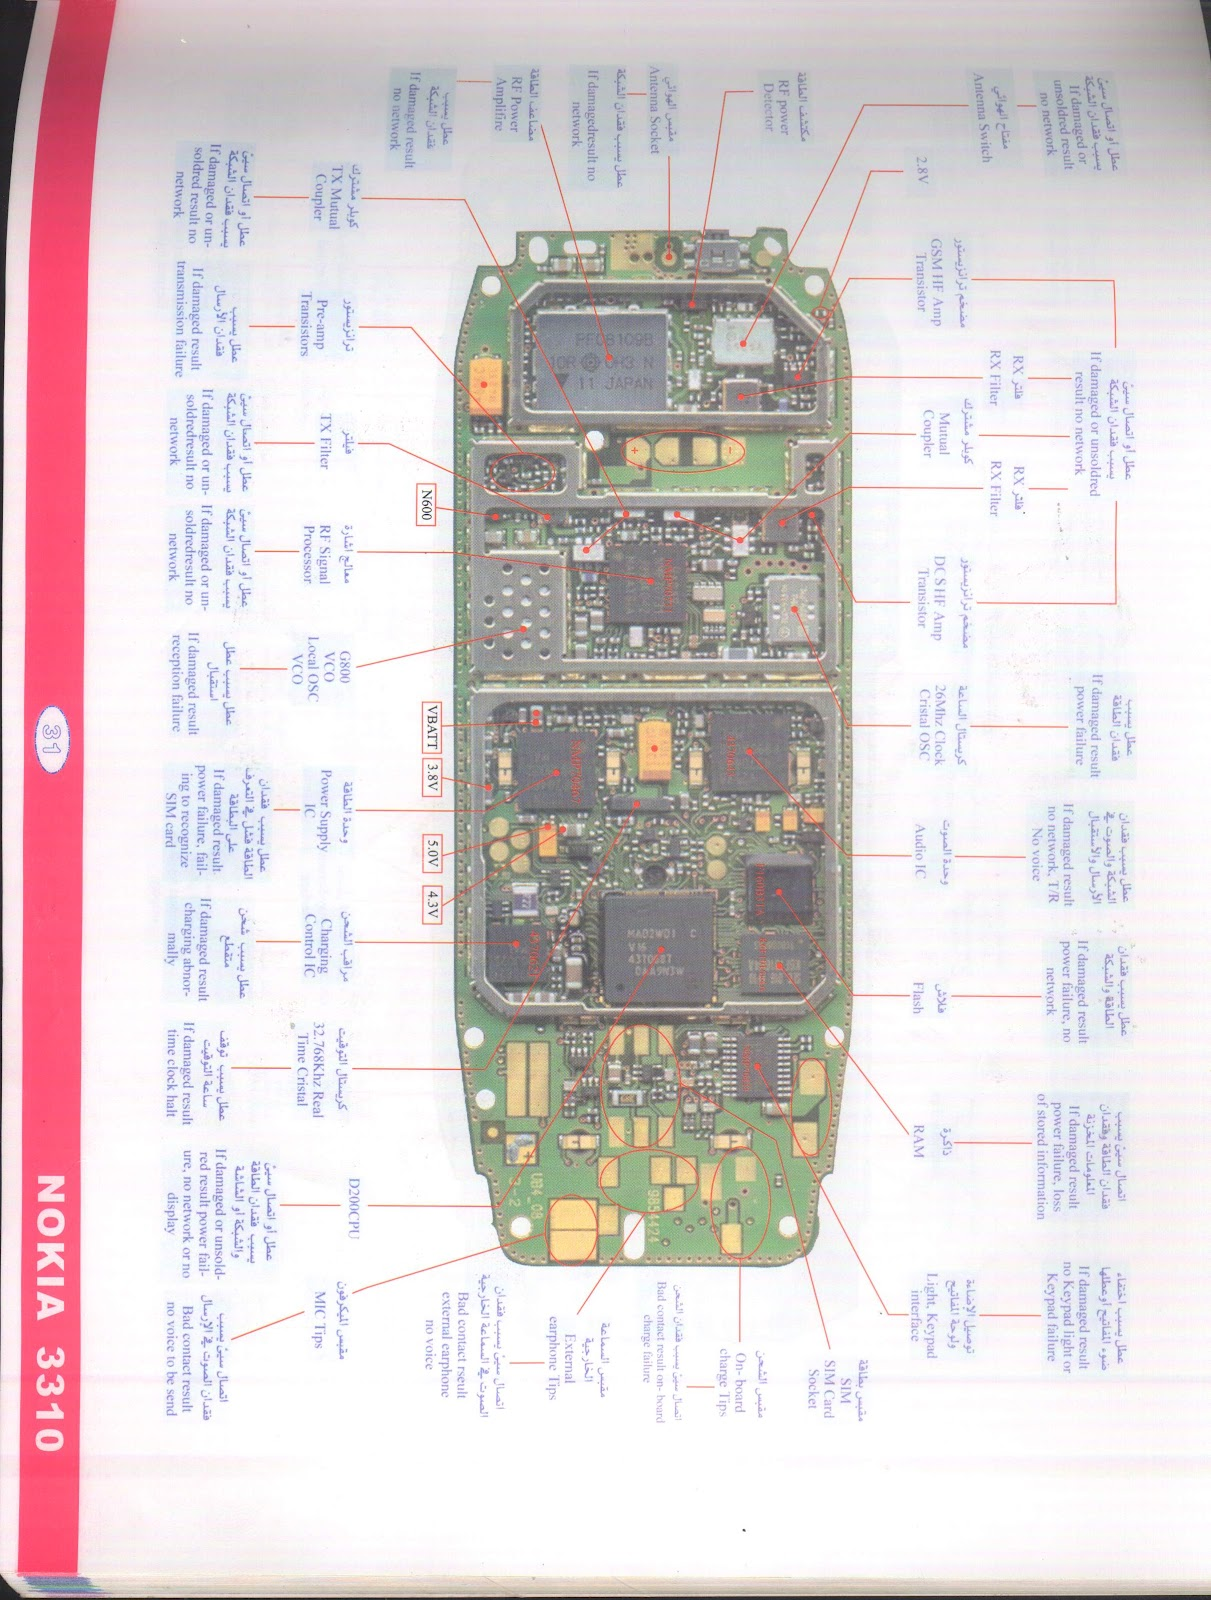 Circuit Diagram Of Nokia C2 01 Wiring Library Samsung Galaxy S